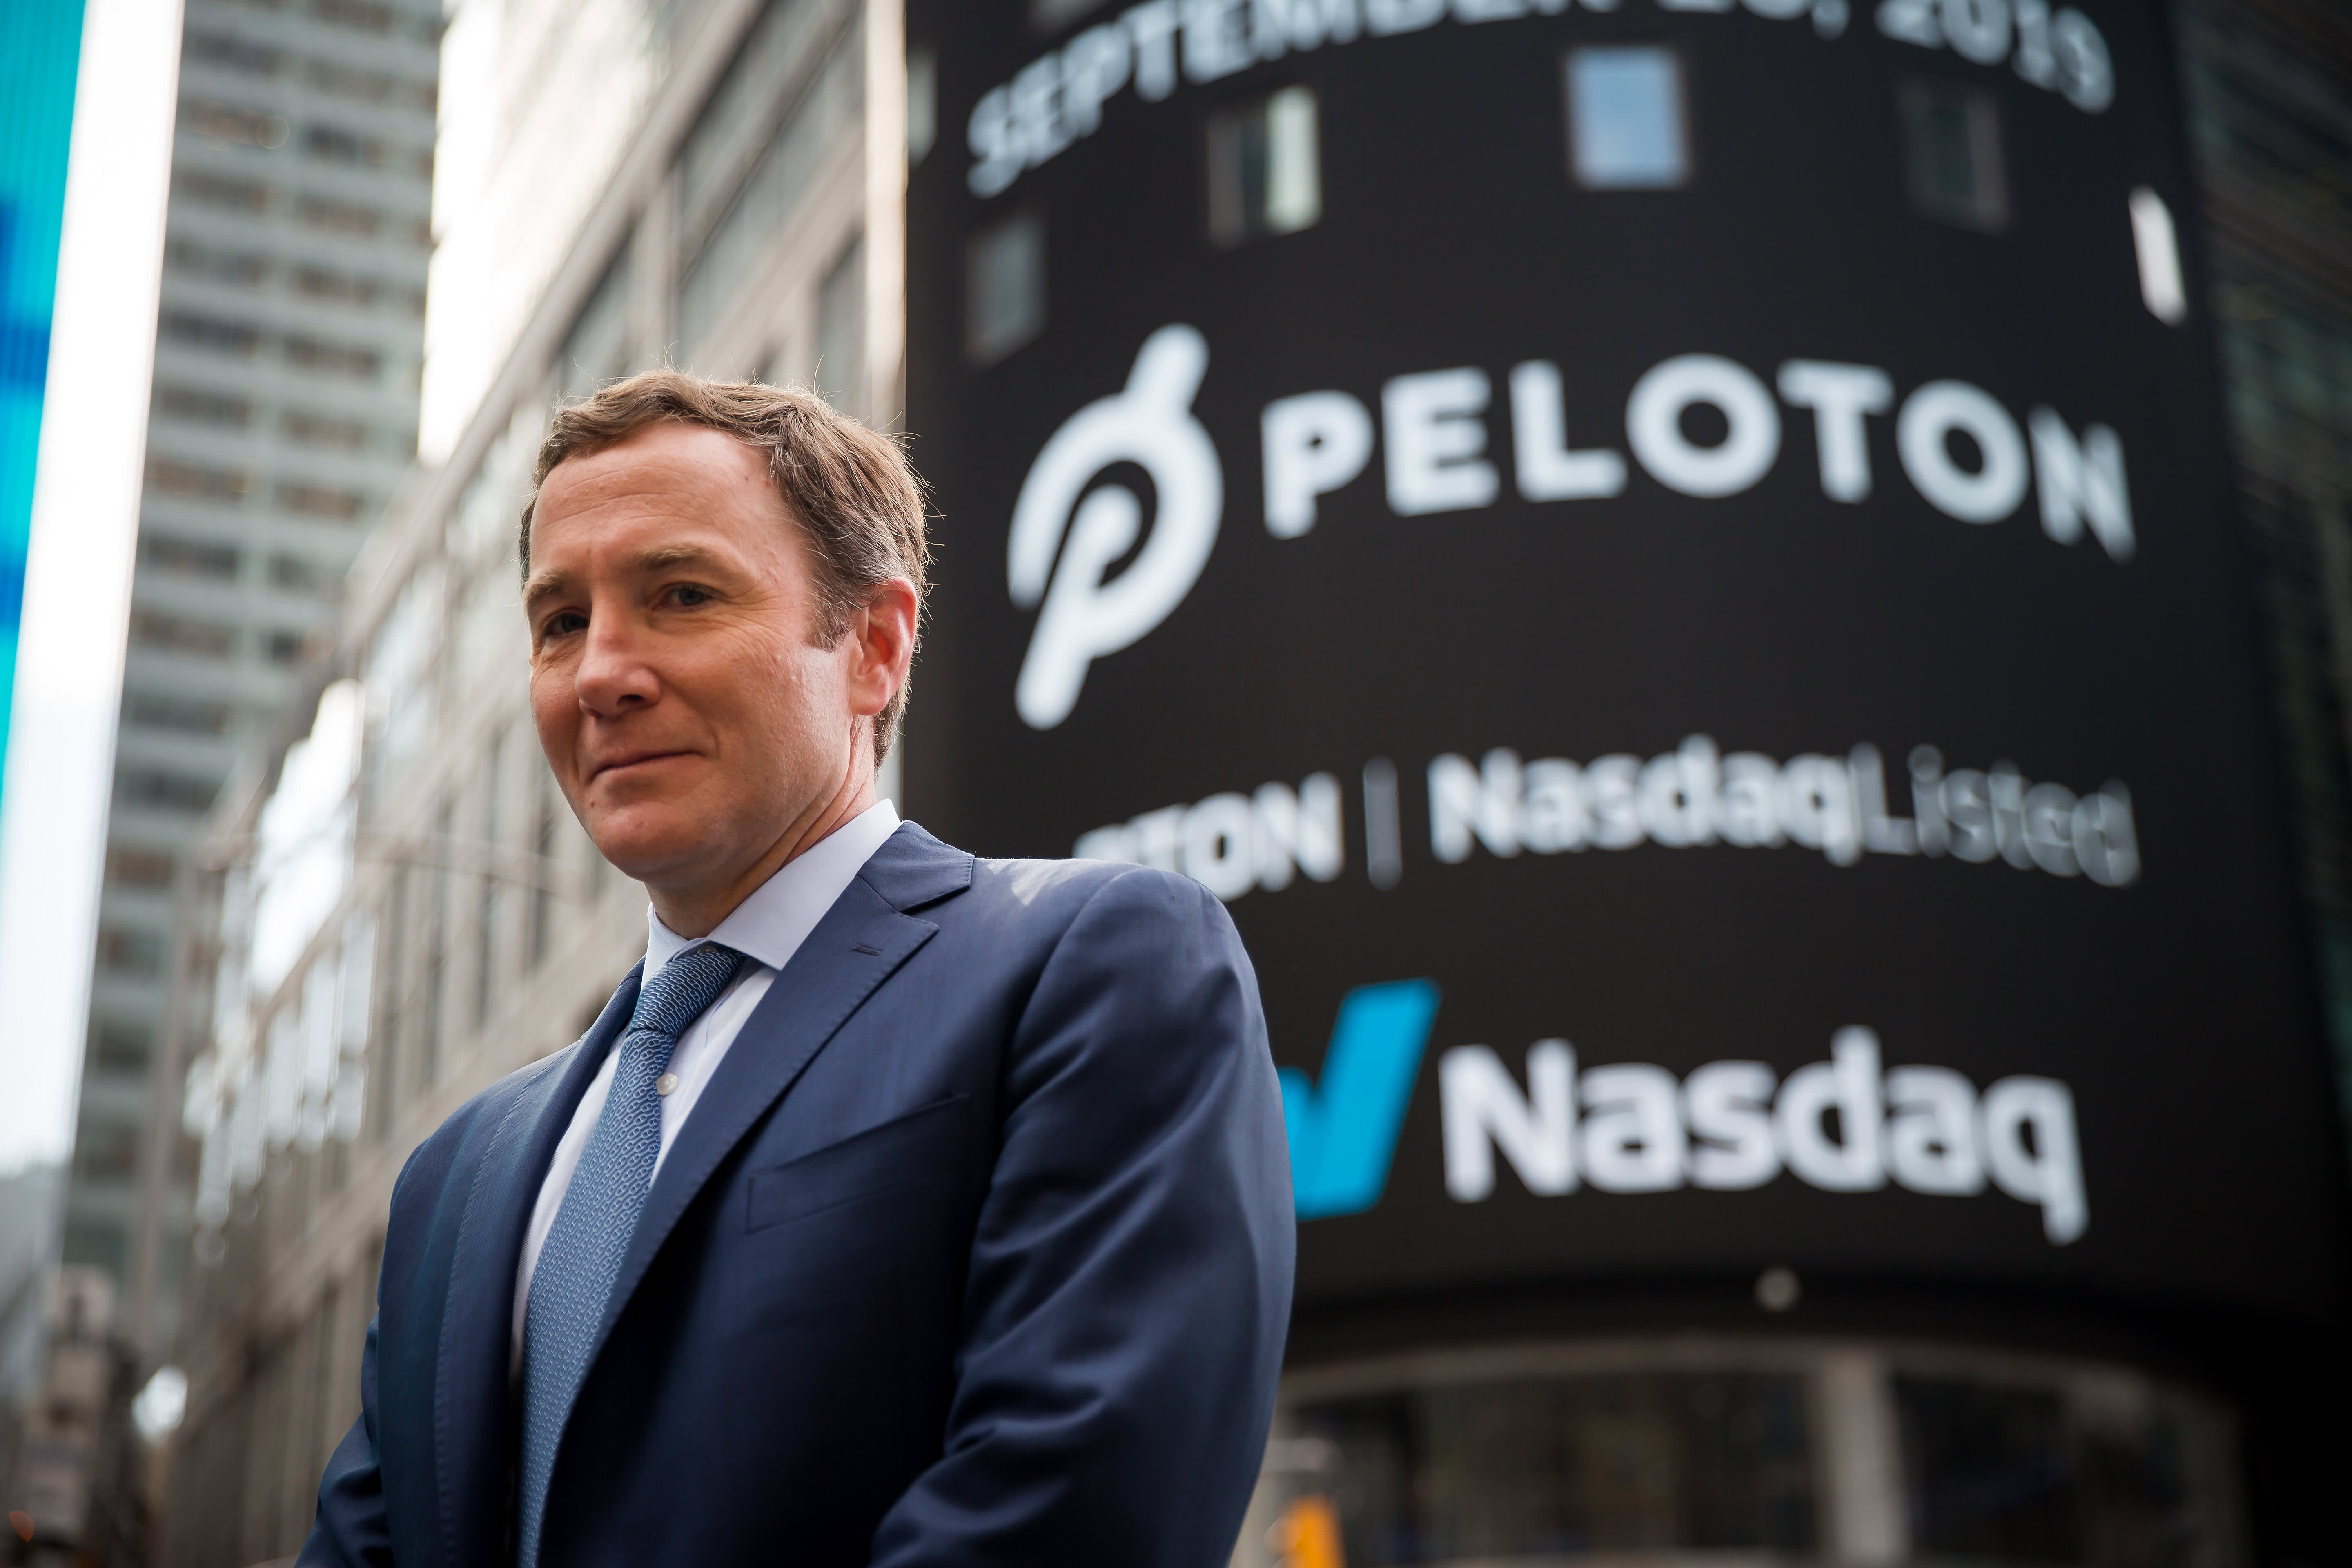 Peloton shares jump nearly 9% on report a cheaper treadmill and new rowing machine will launch next year